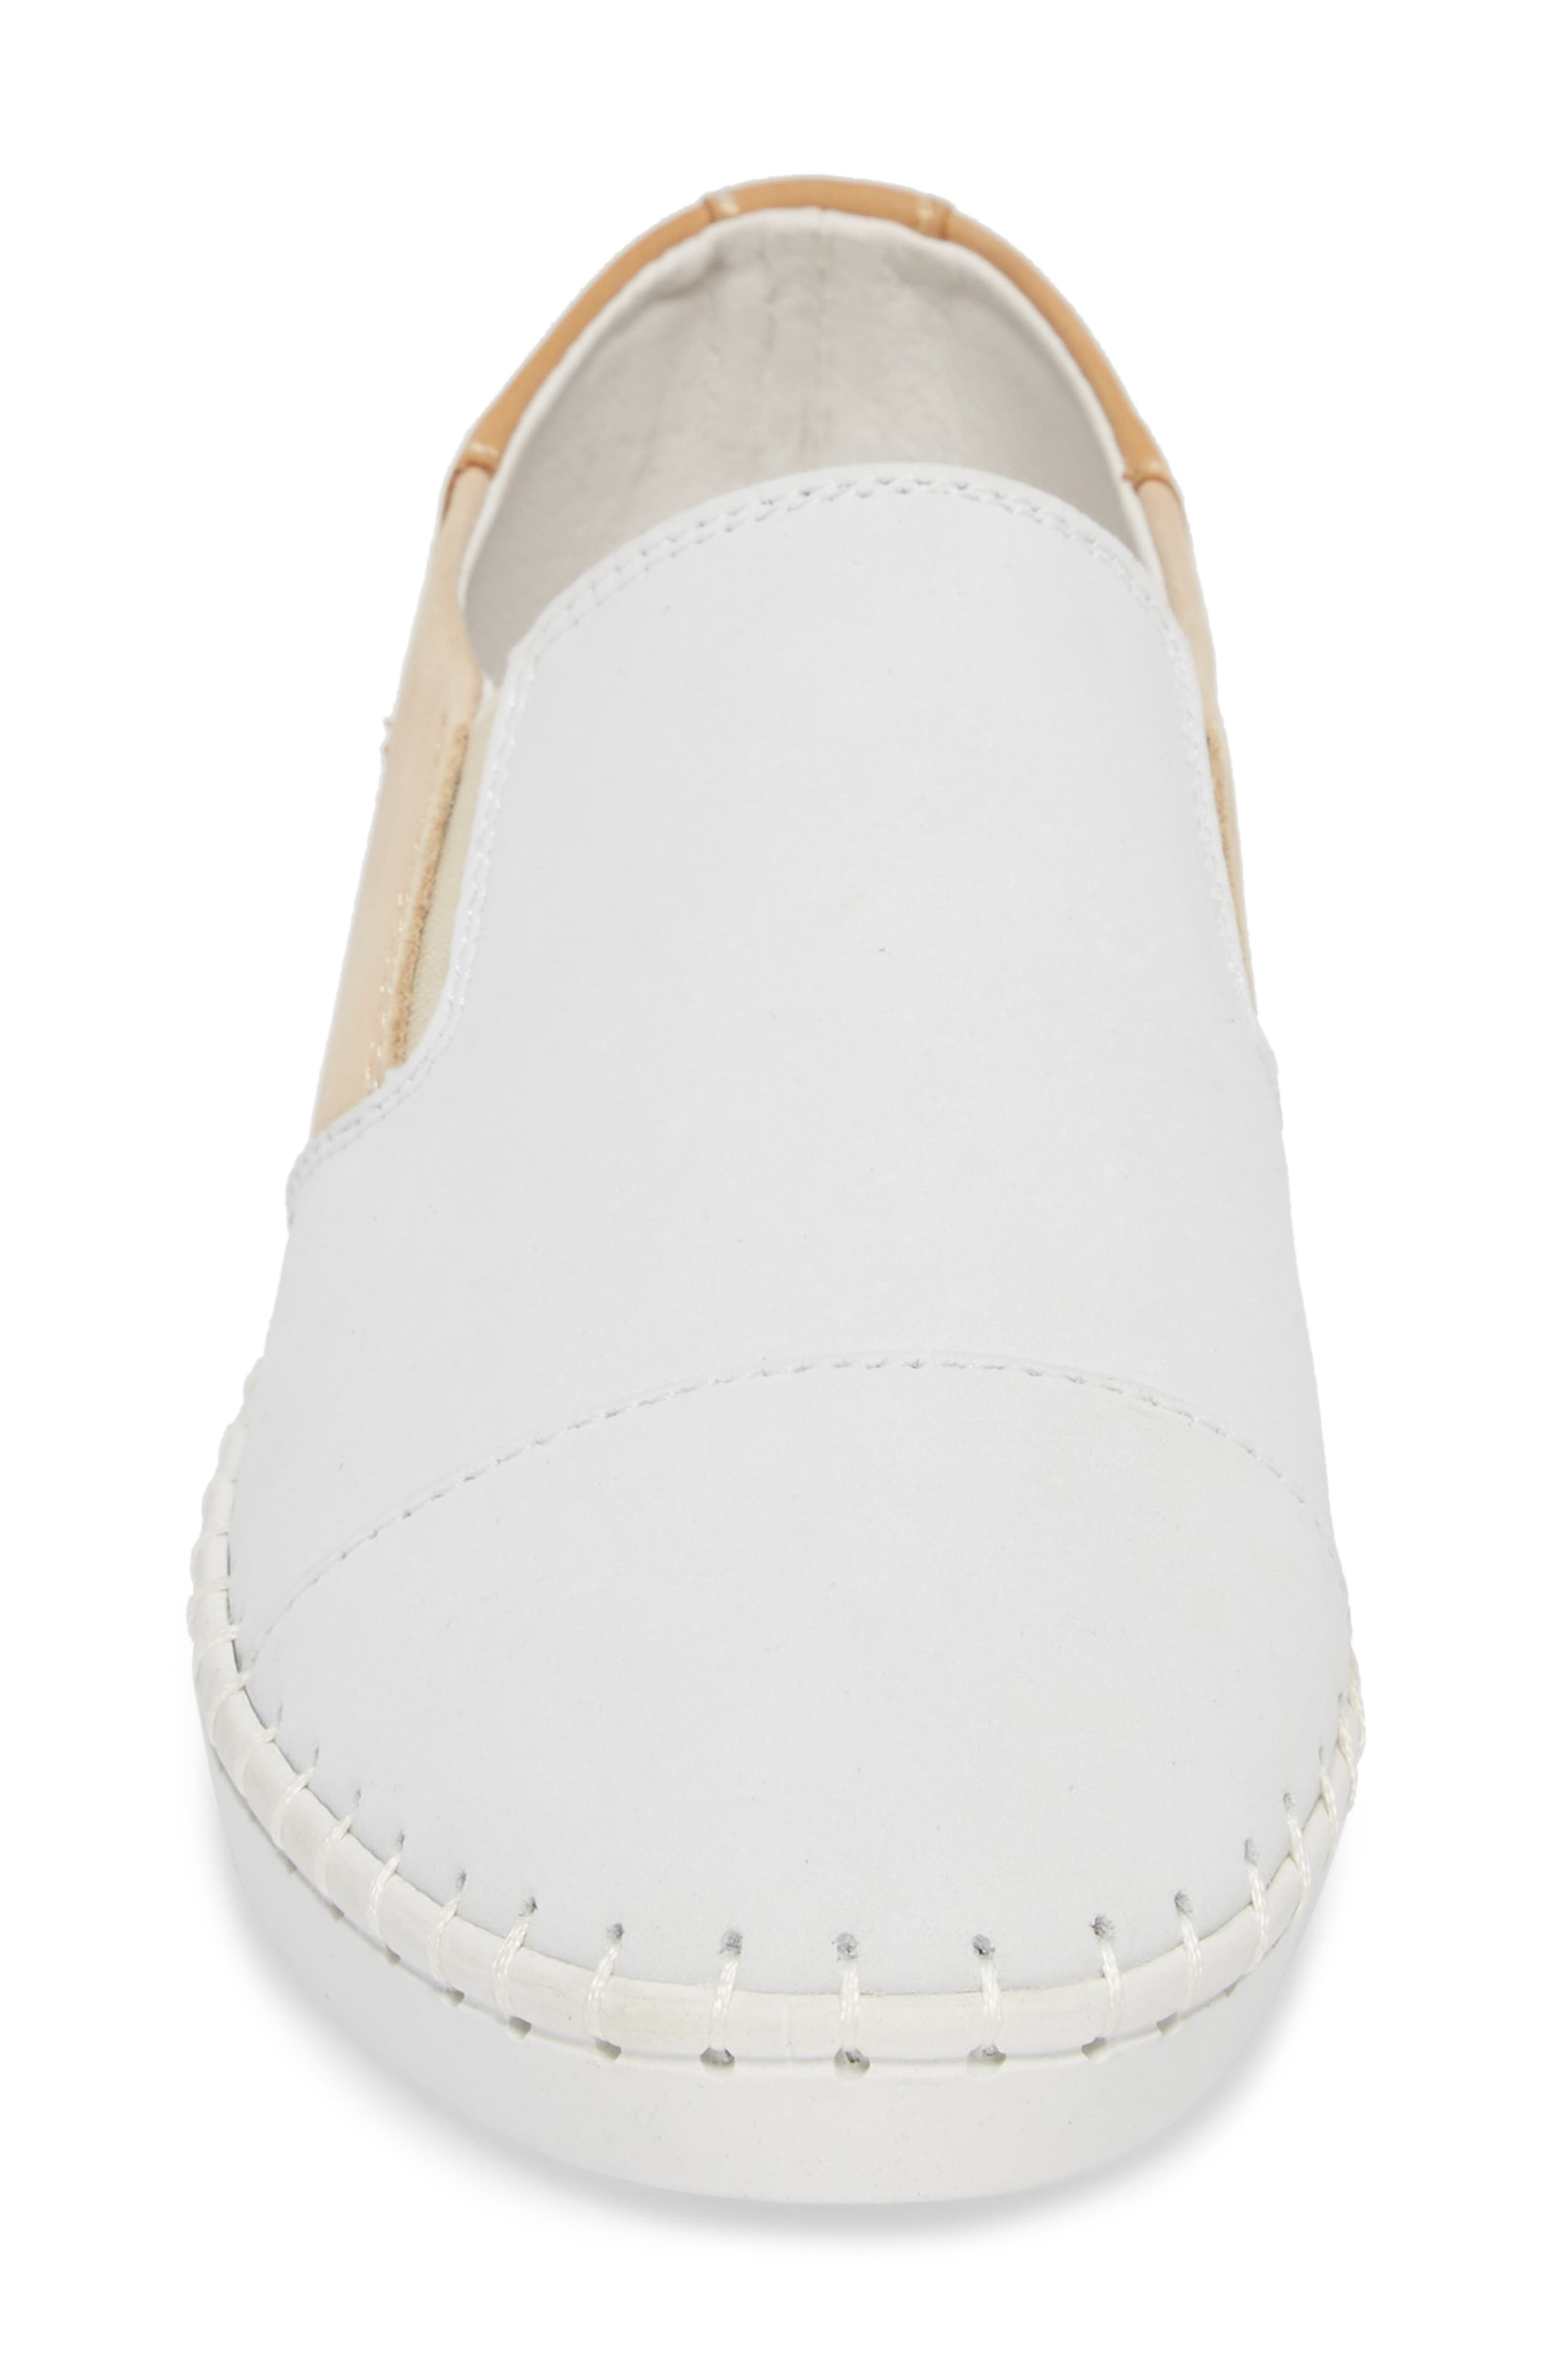 TW107 Slip-On Flat,                             Alternate thumbnail 4, color,                             NUDE MIX LEATHER